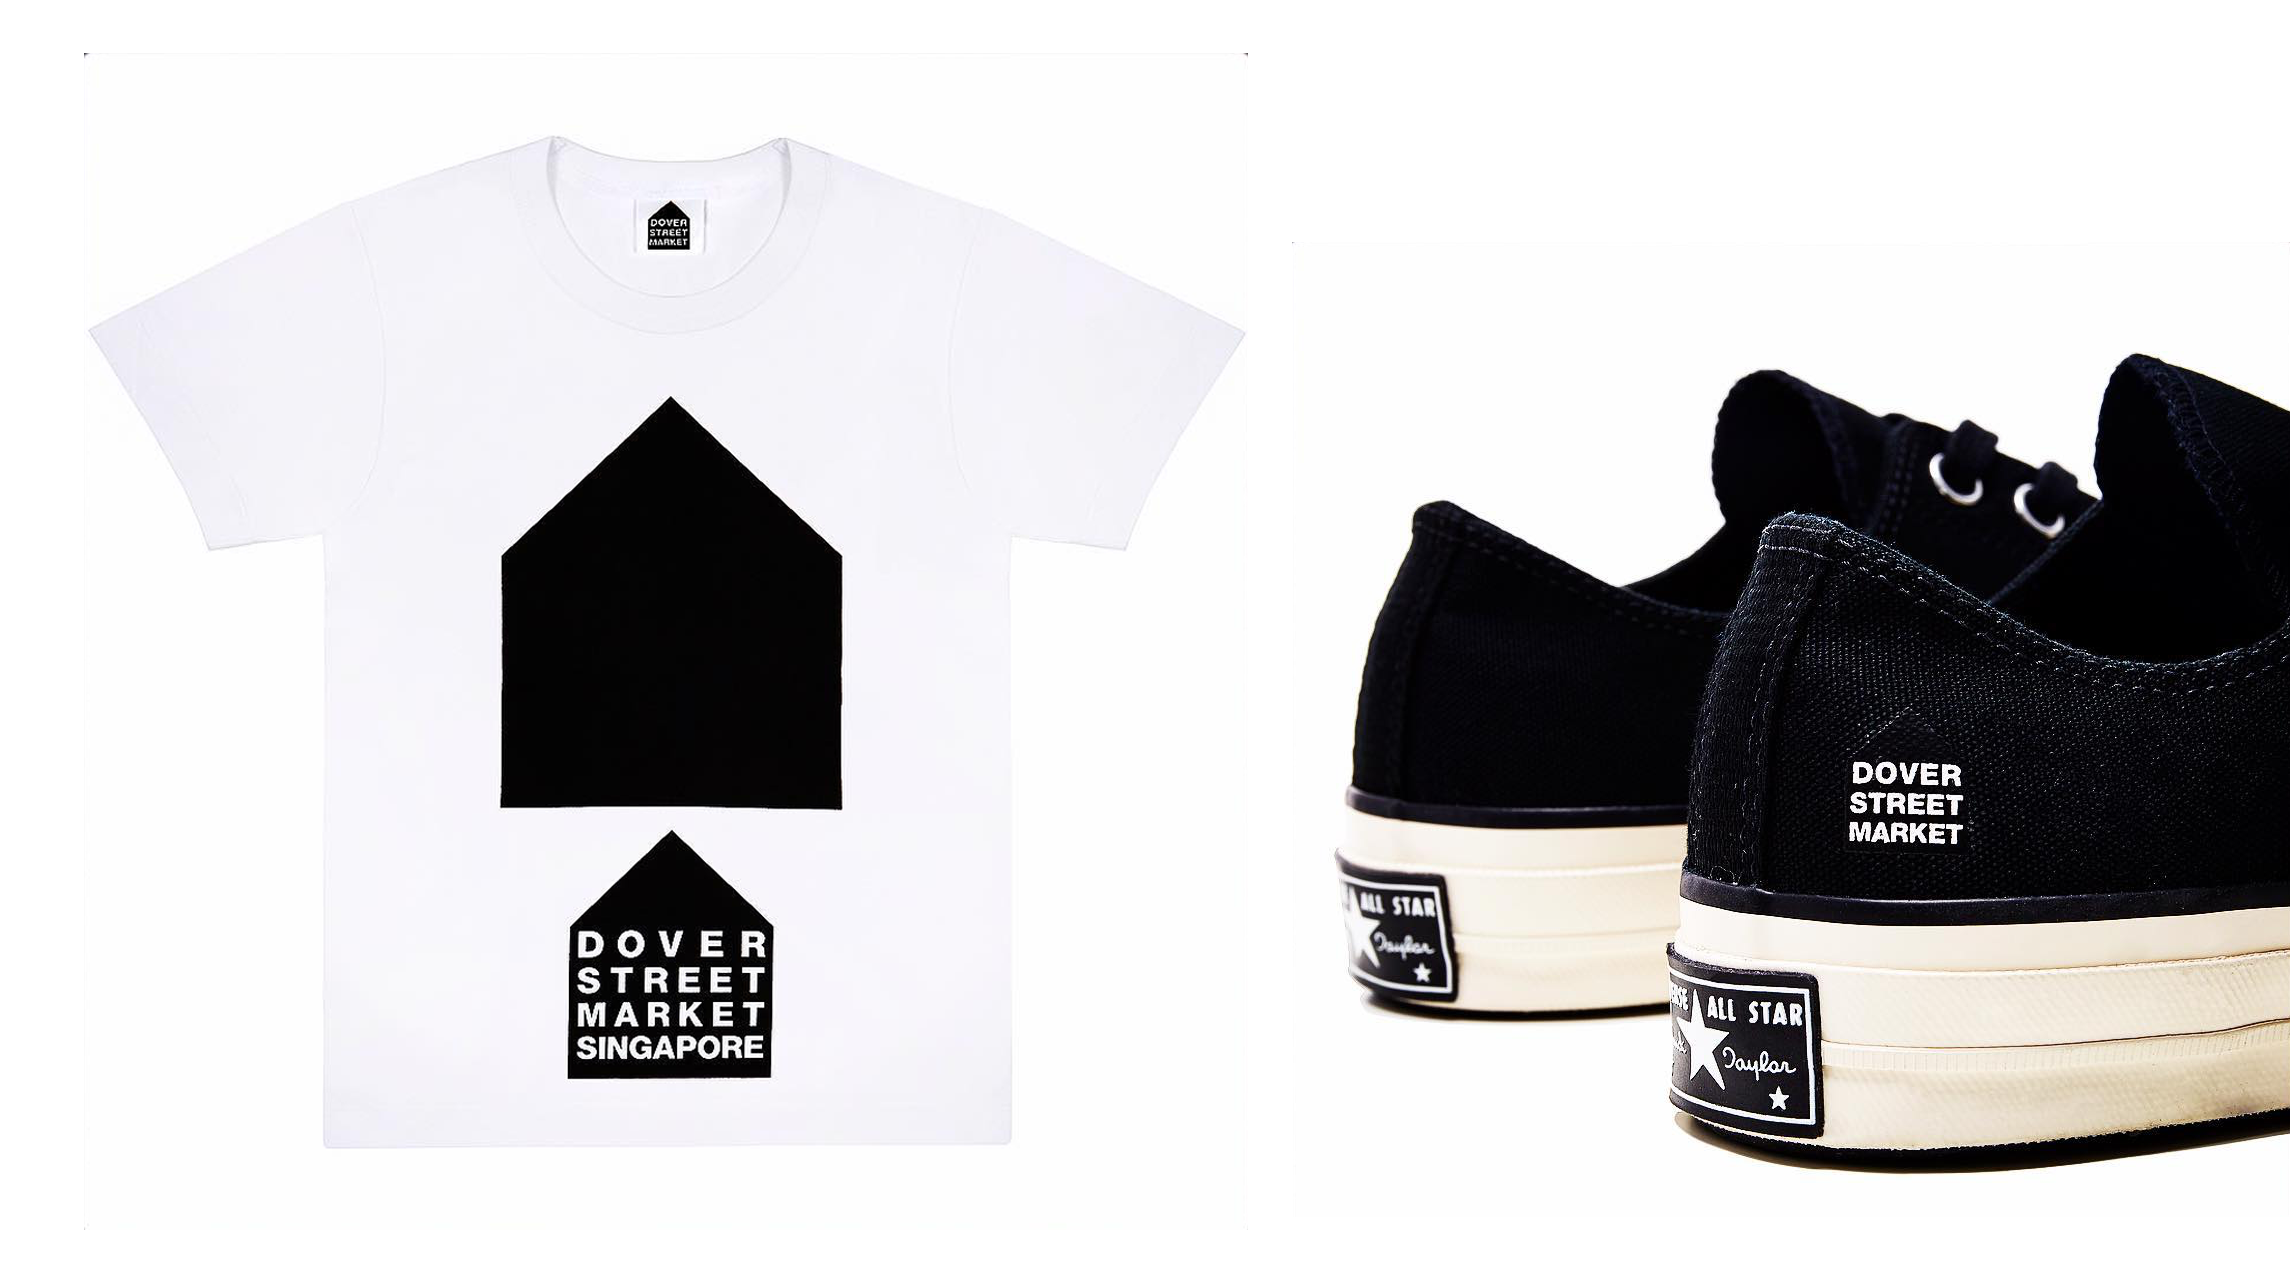 7a3e0cbb274b Here s What s Dropping At This Weekend s Dover Street Market Opening in  Singapore